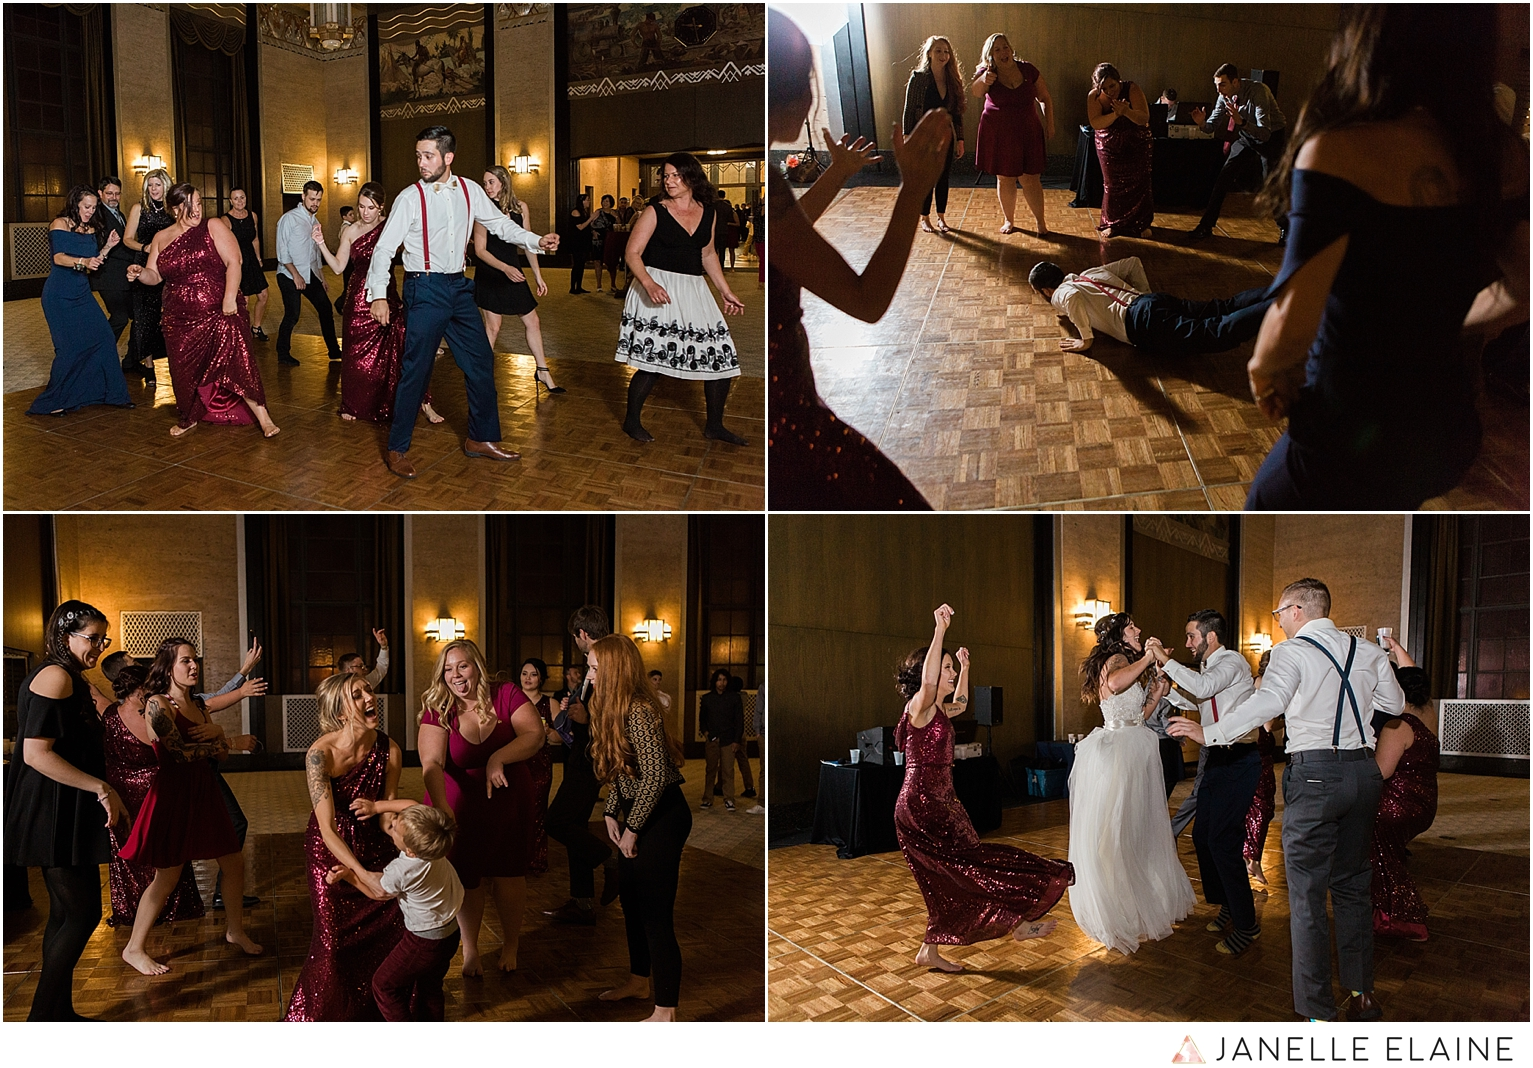 seattle wedding photographers-durham museum-wedding-omaha ne-destination-wedding-photographers-janelle elaine-midwest bride-67.jpg